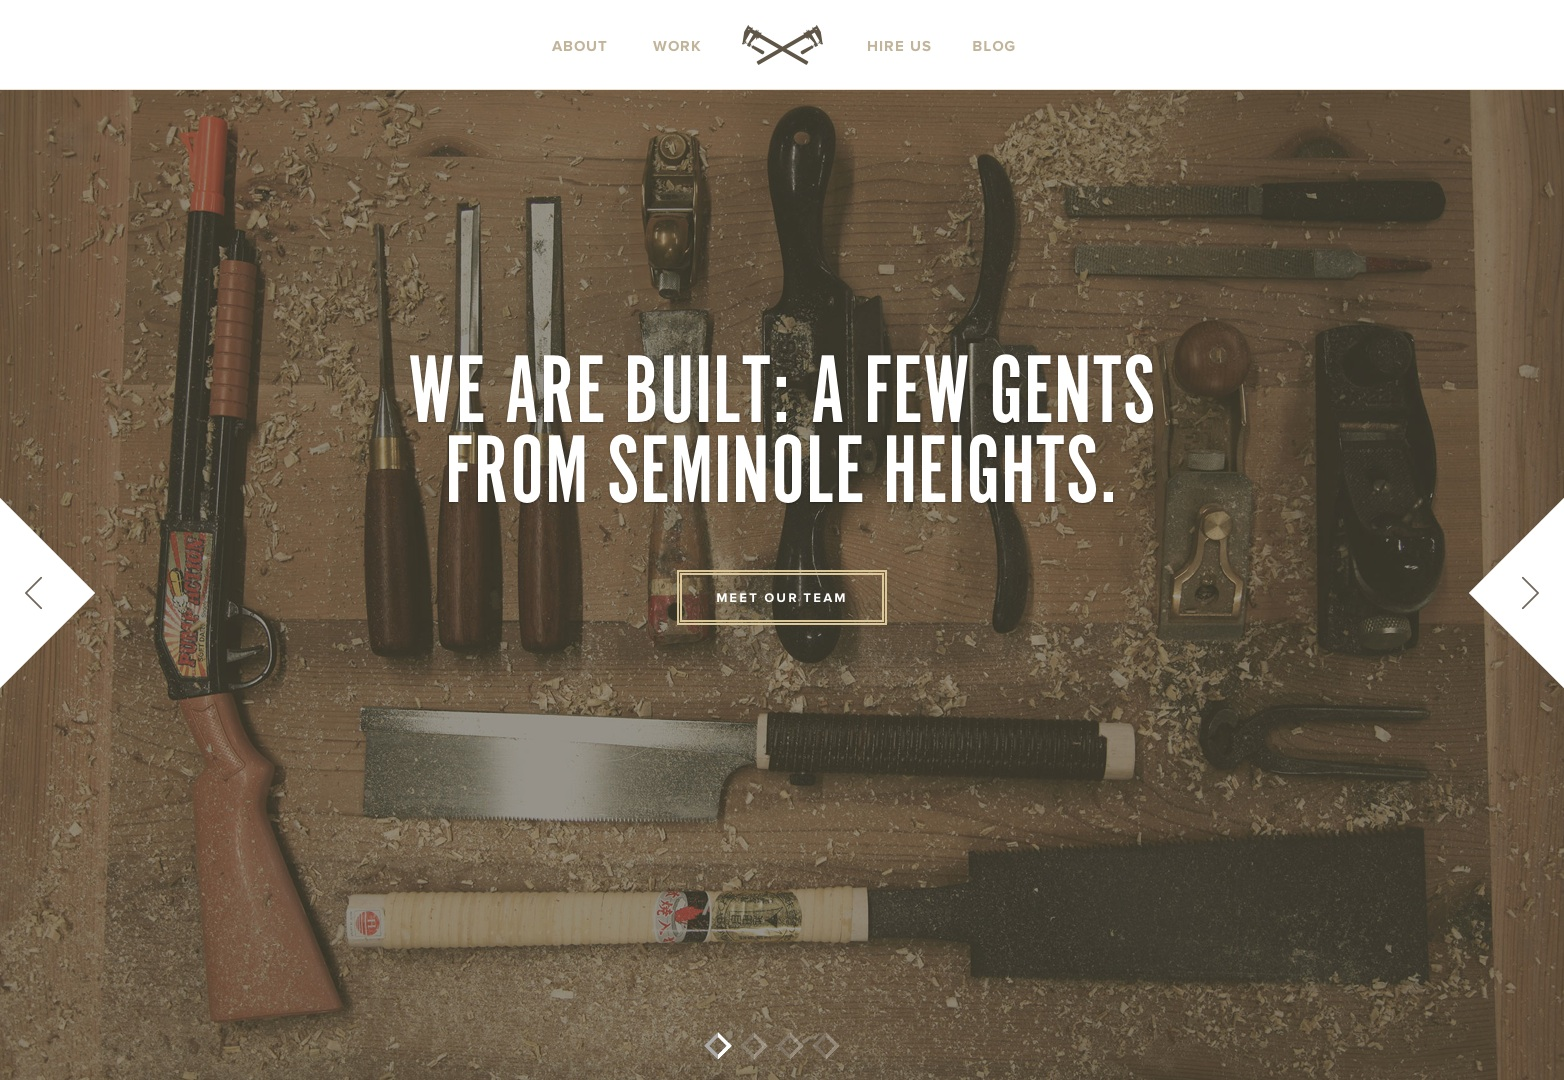 Built | A Furniture & Fixtures Shop In Seminole Heights, FL.